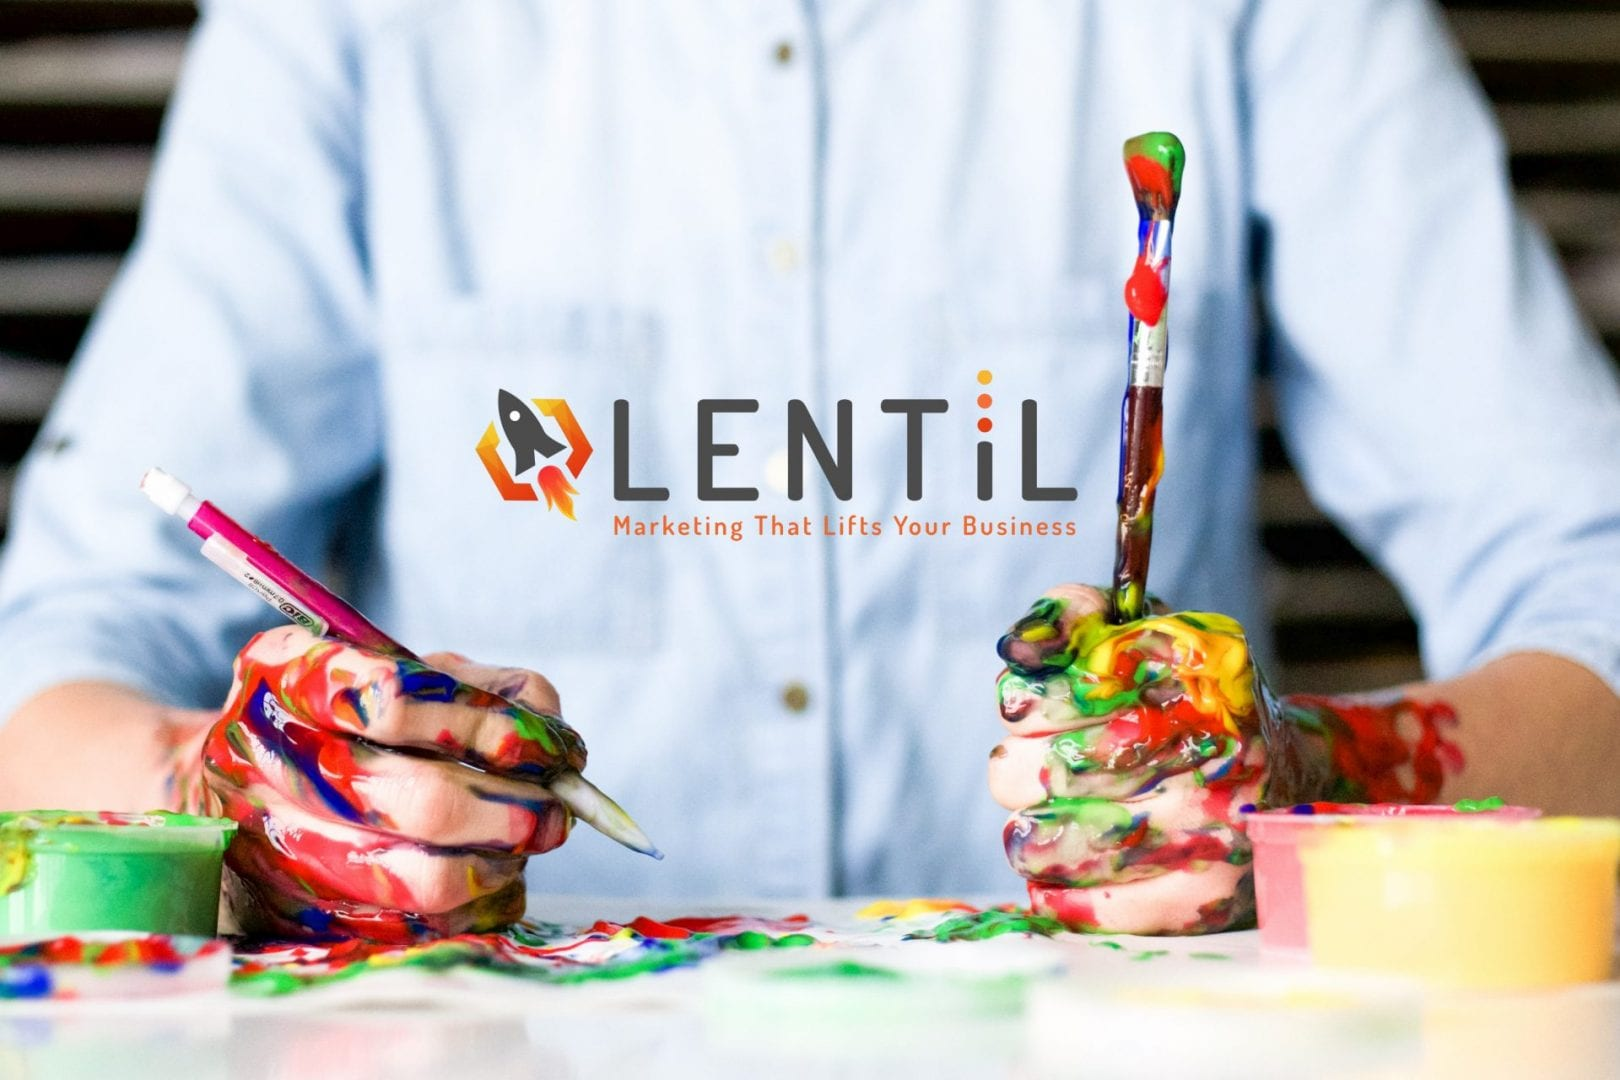 Man with pain brushes and Lentil Marketing logo